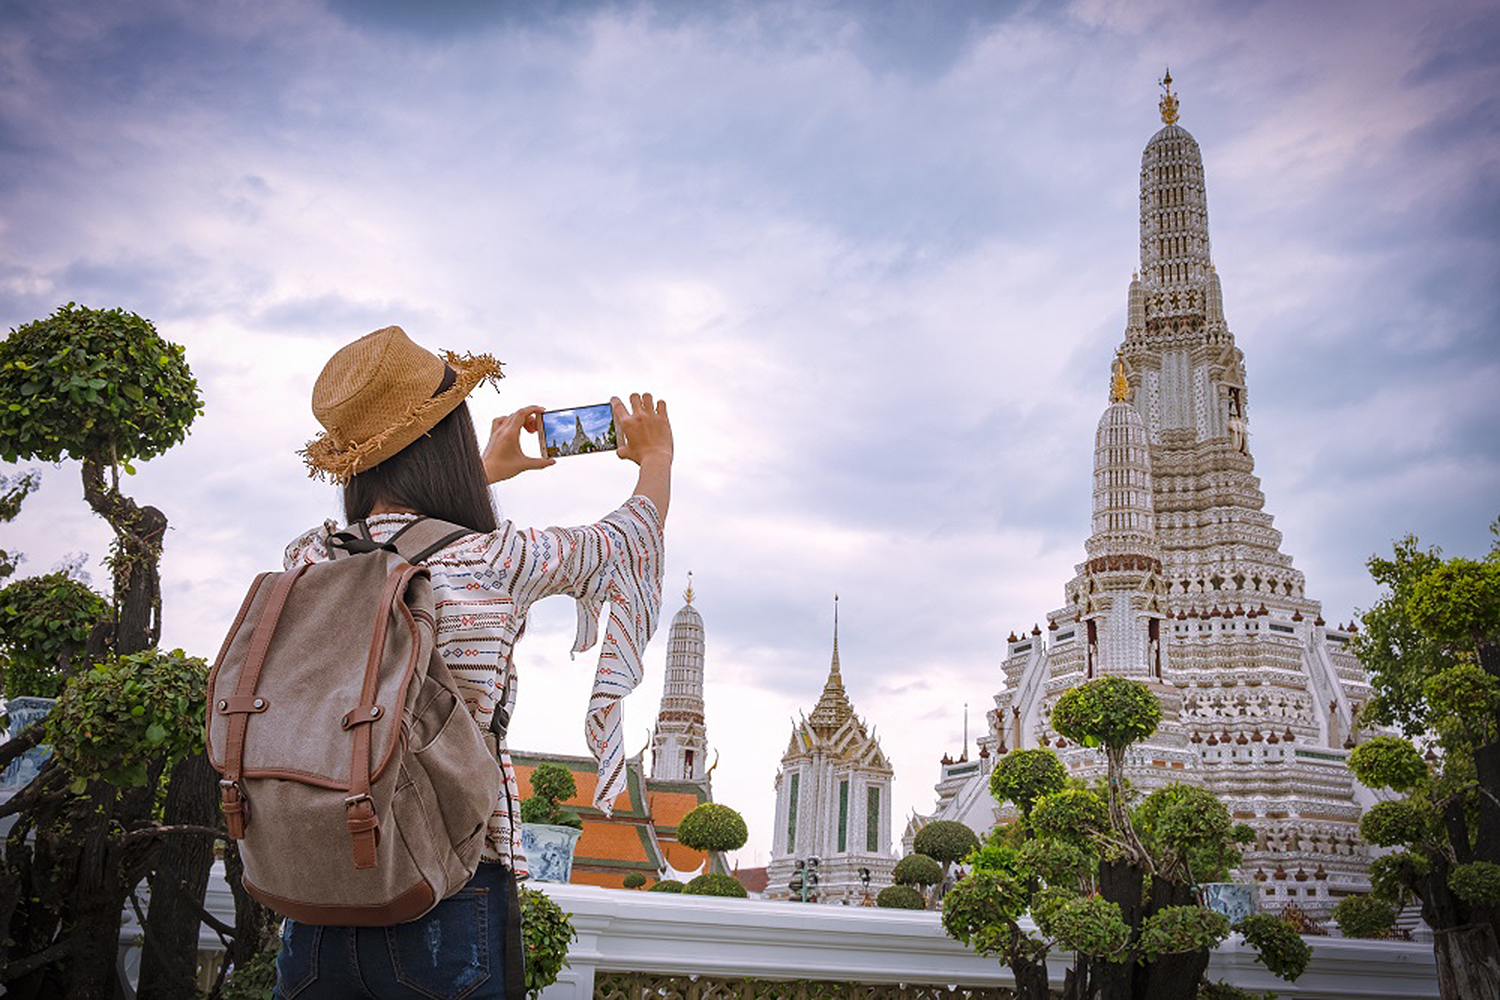 Instagram tops the source of inspiration for travellers aged 16-24, according to a Booking.com survey. (Booking.com photo)